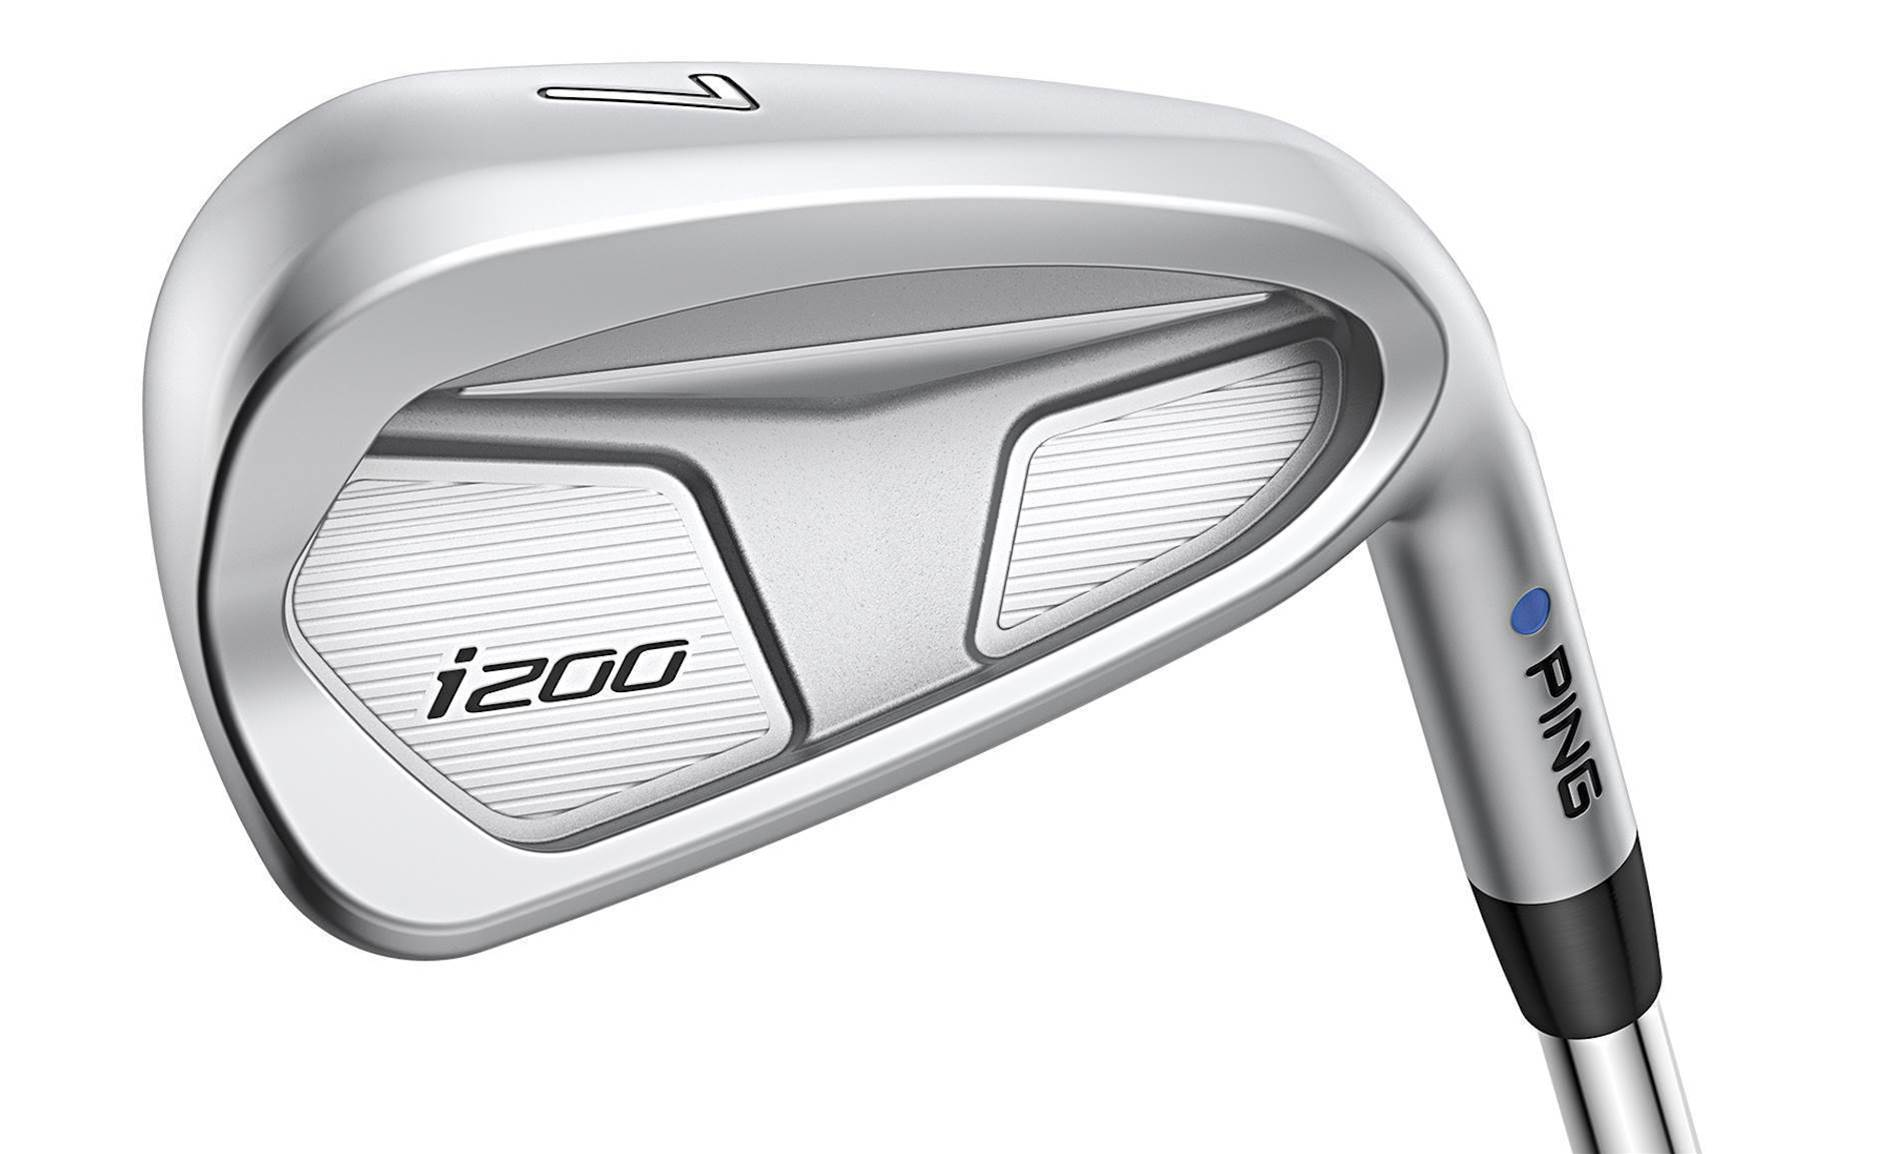 New Gear: Ping's i200 irons unveiled